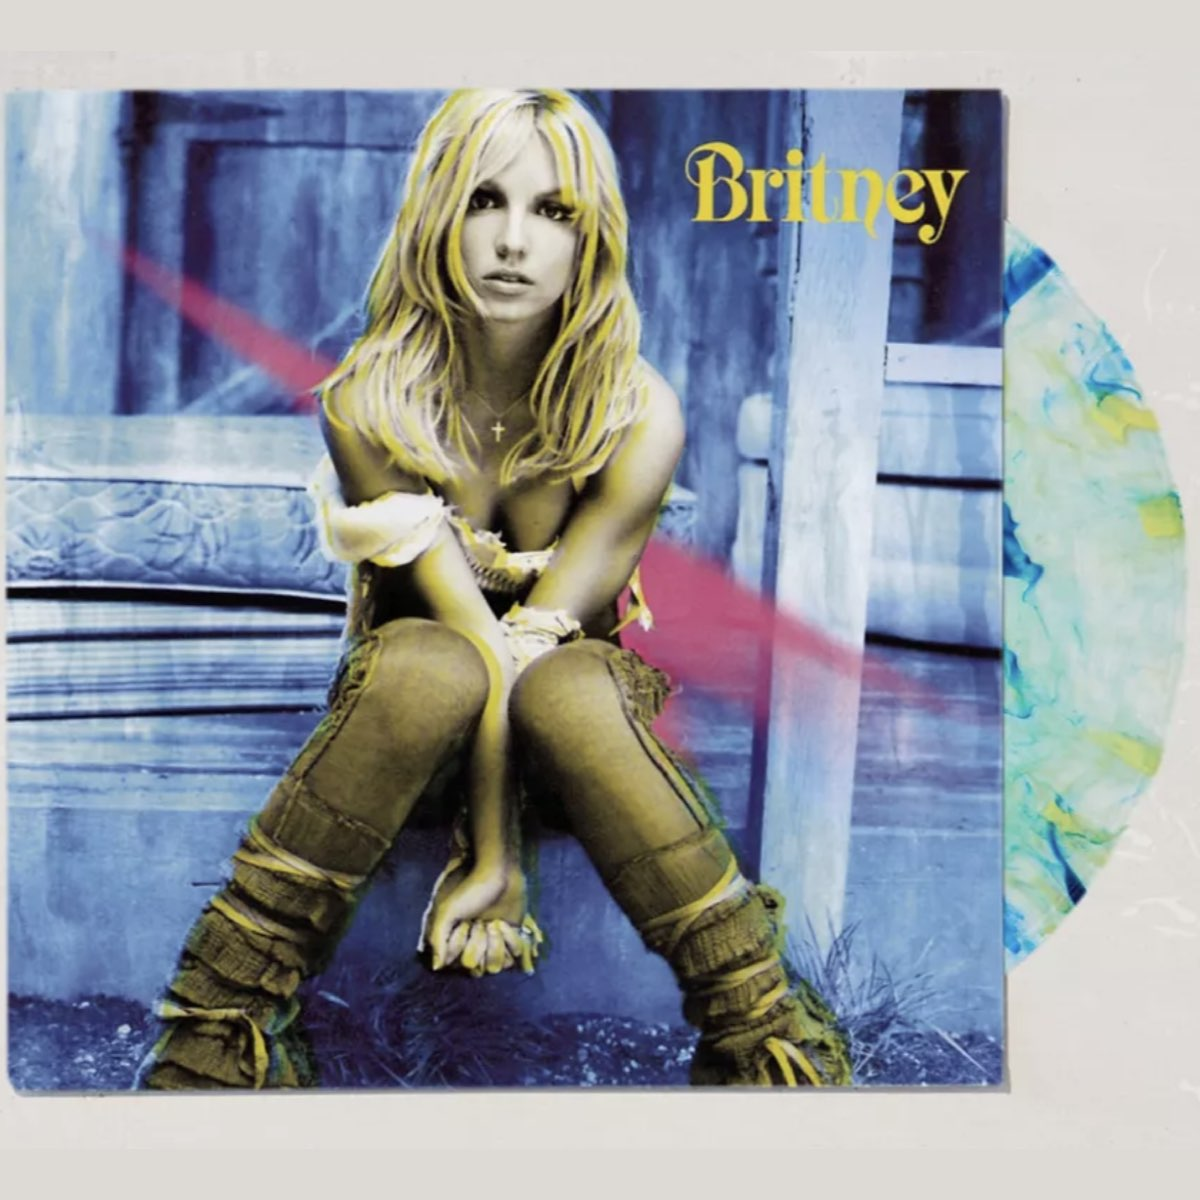 Britney Spears - Britney [Urban Outfitters]